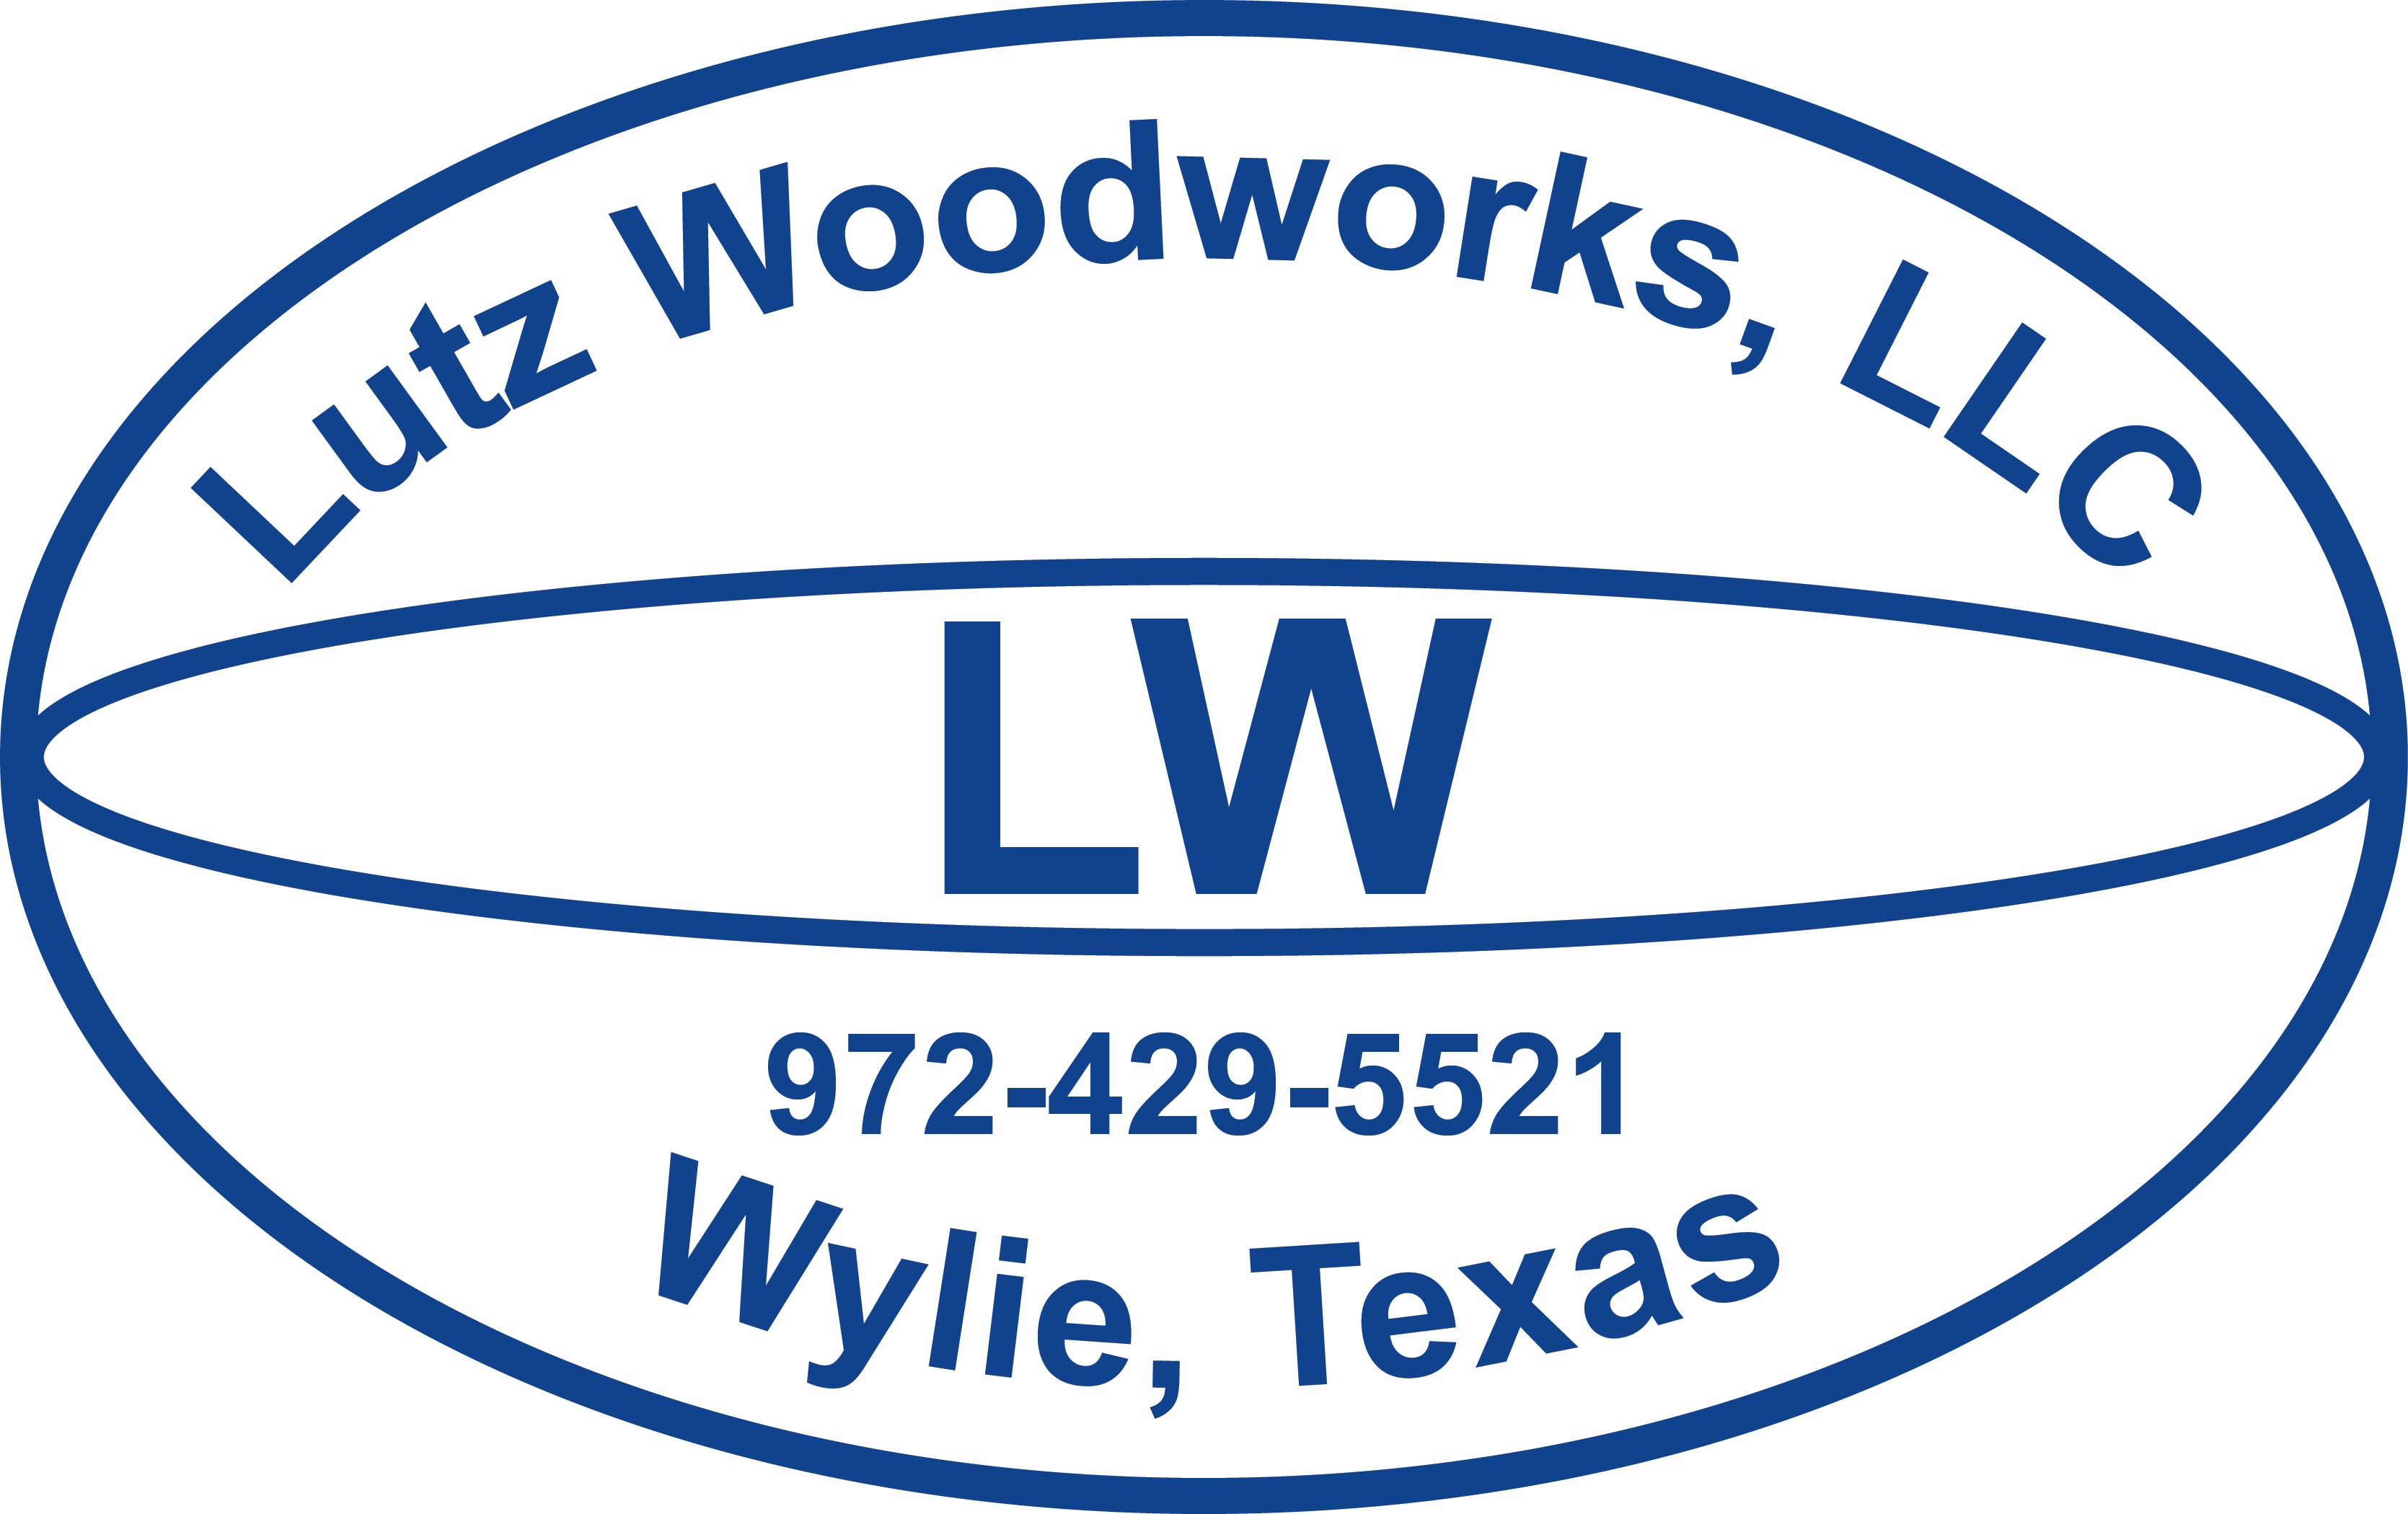 Lutz Woodworks